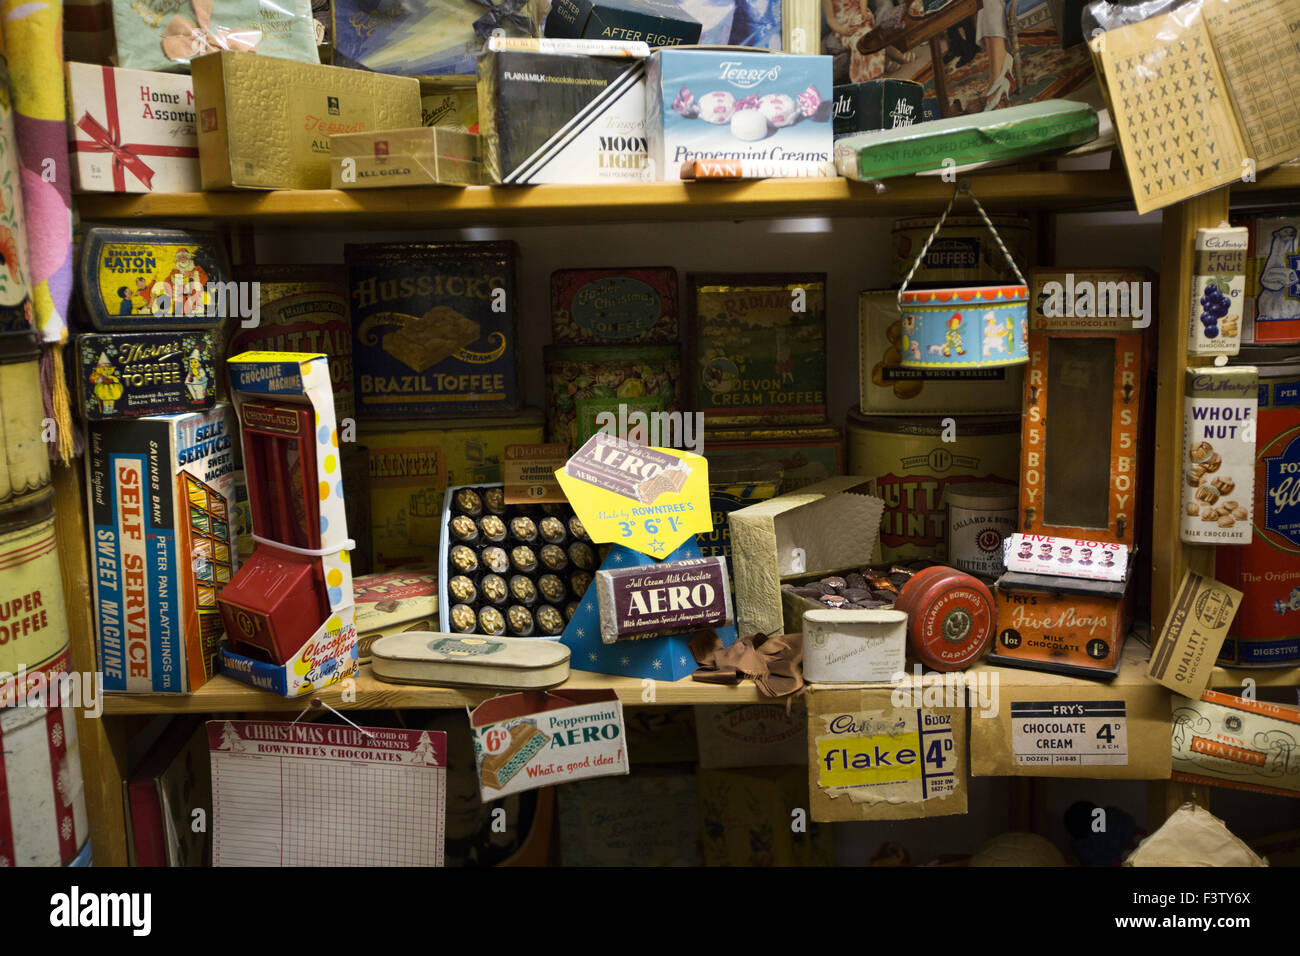 UK, England, Shropshire, Craven Arms, Market Street, Land of Lost Content museum, chocolate exhibit - Stock Image